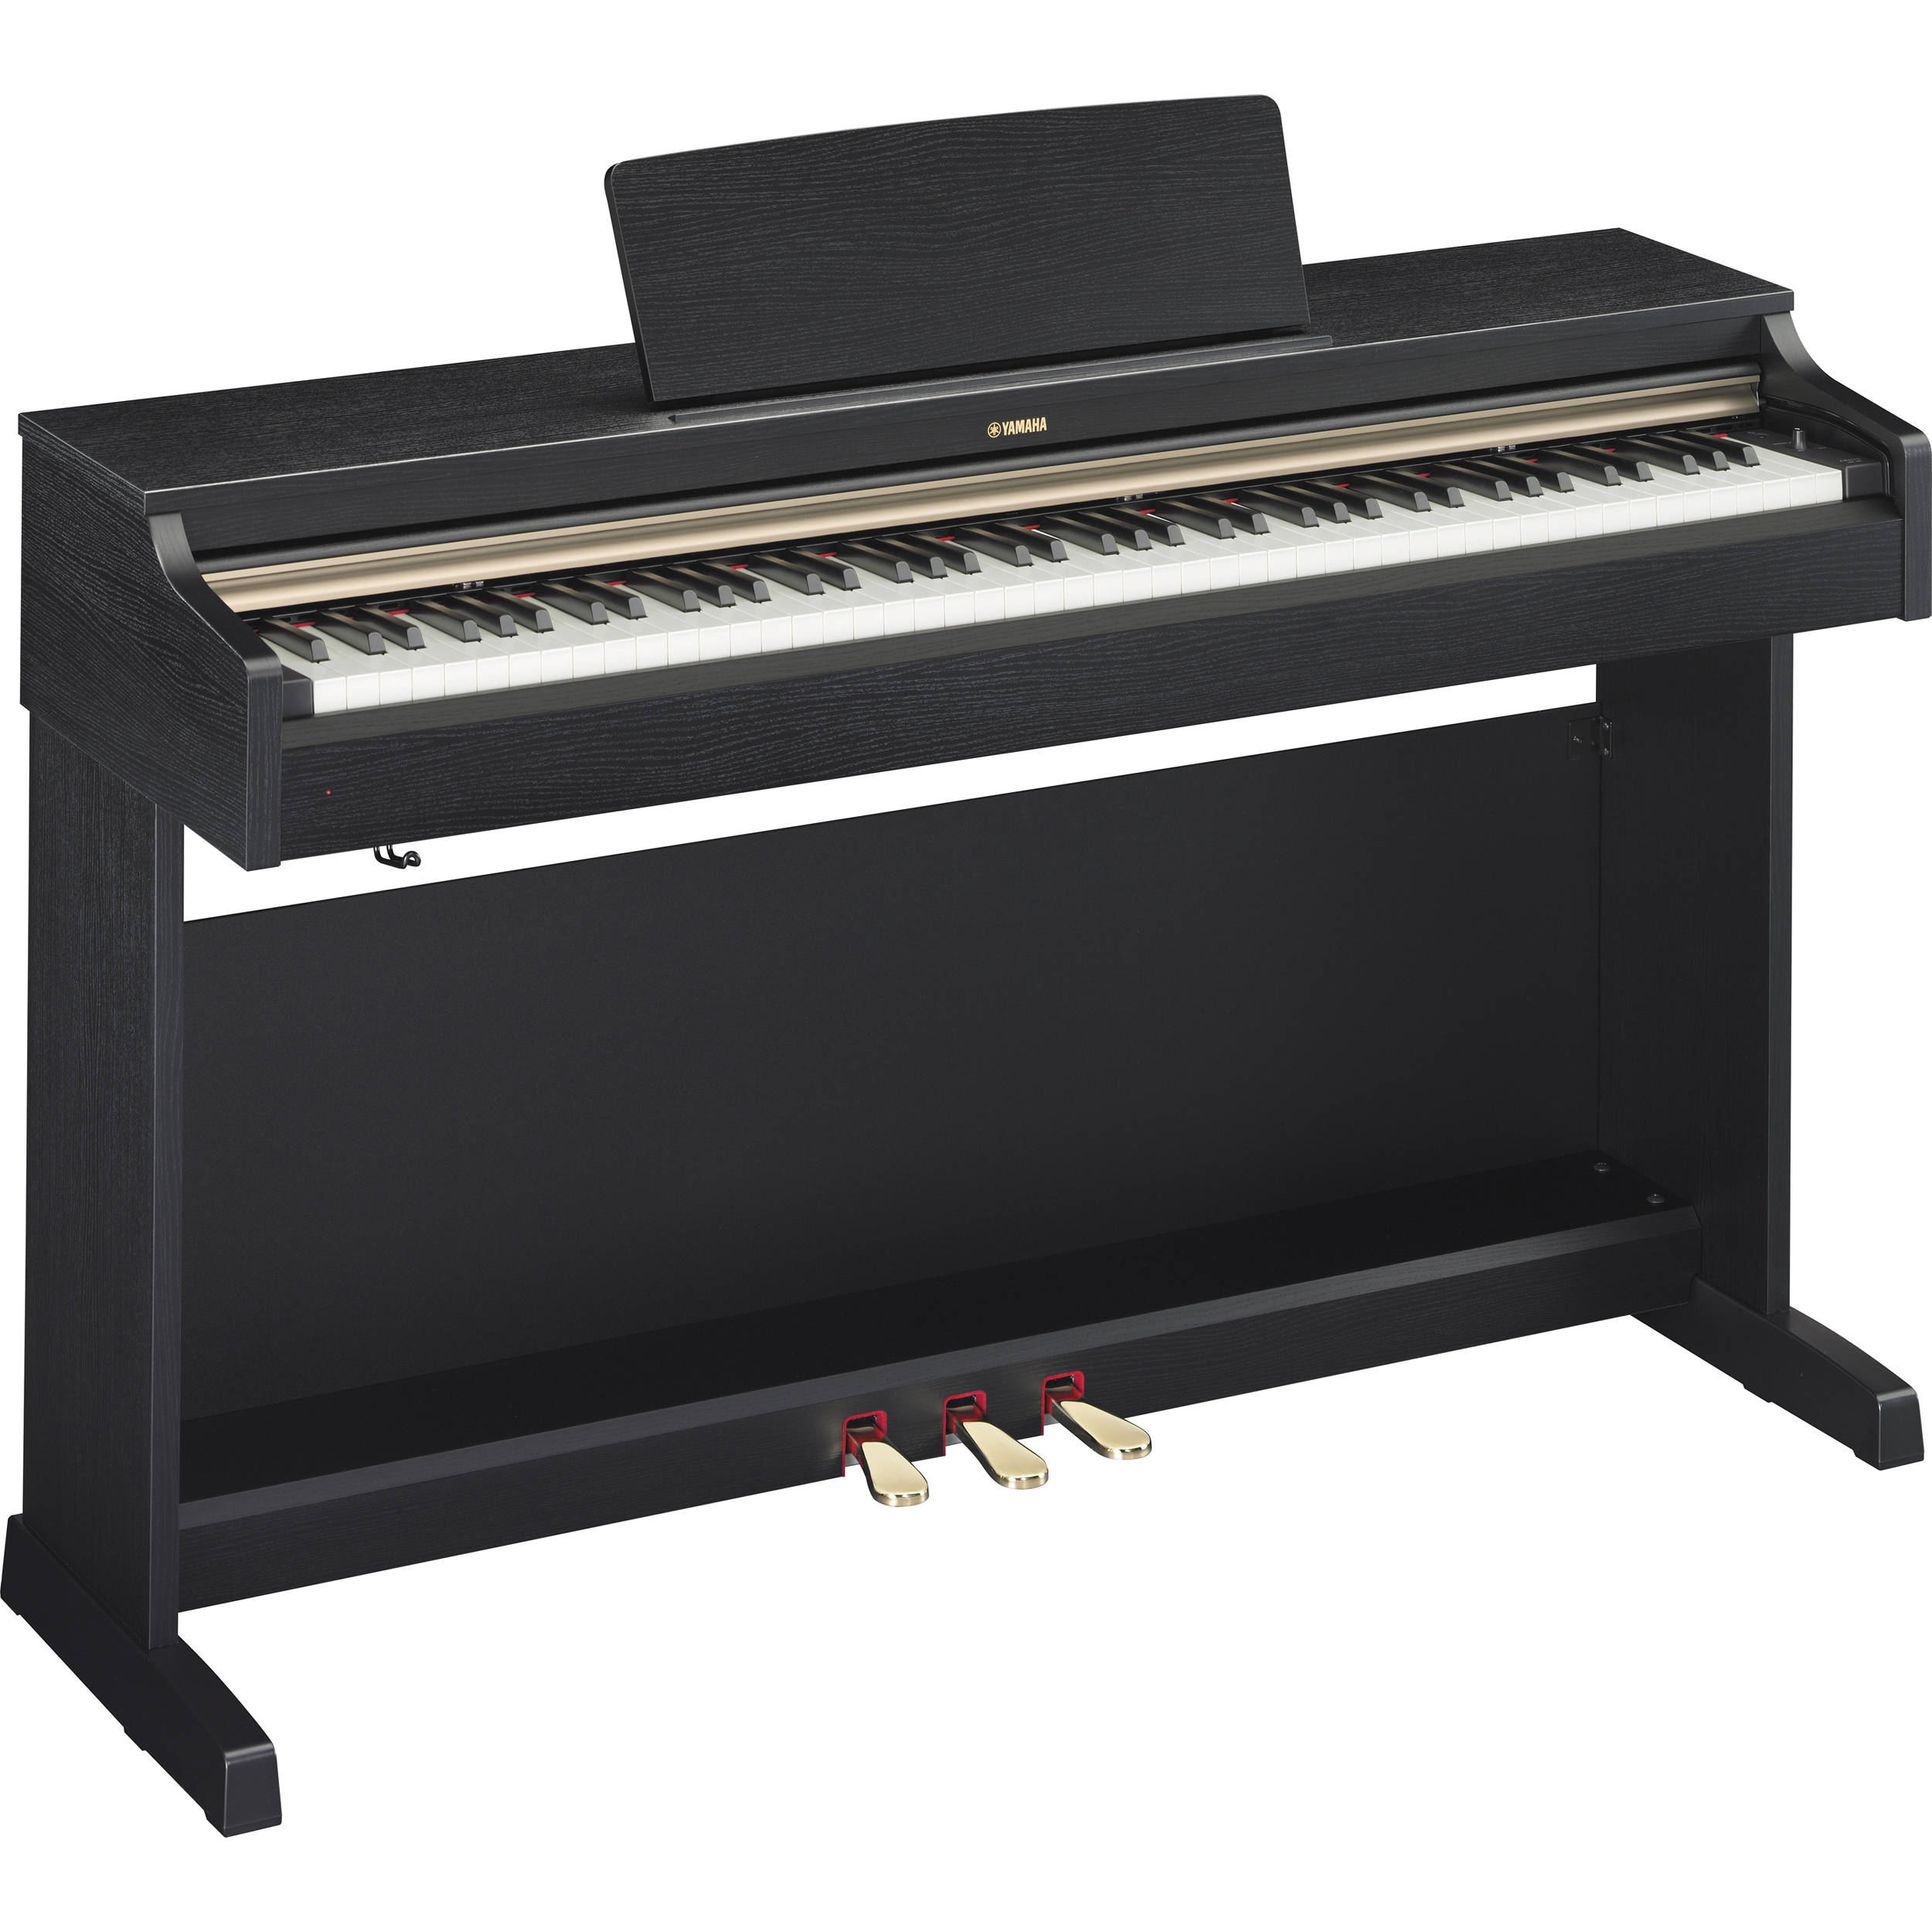 Yamaha ydp 162 arius 88 key digital piano black walnut for Yamaha ydp 162 digital piano